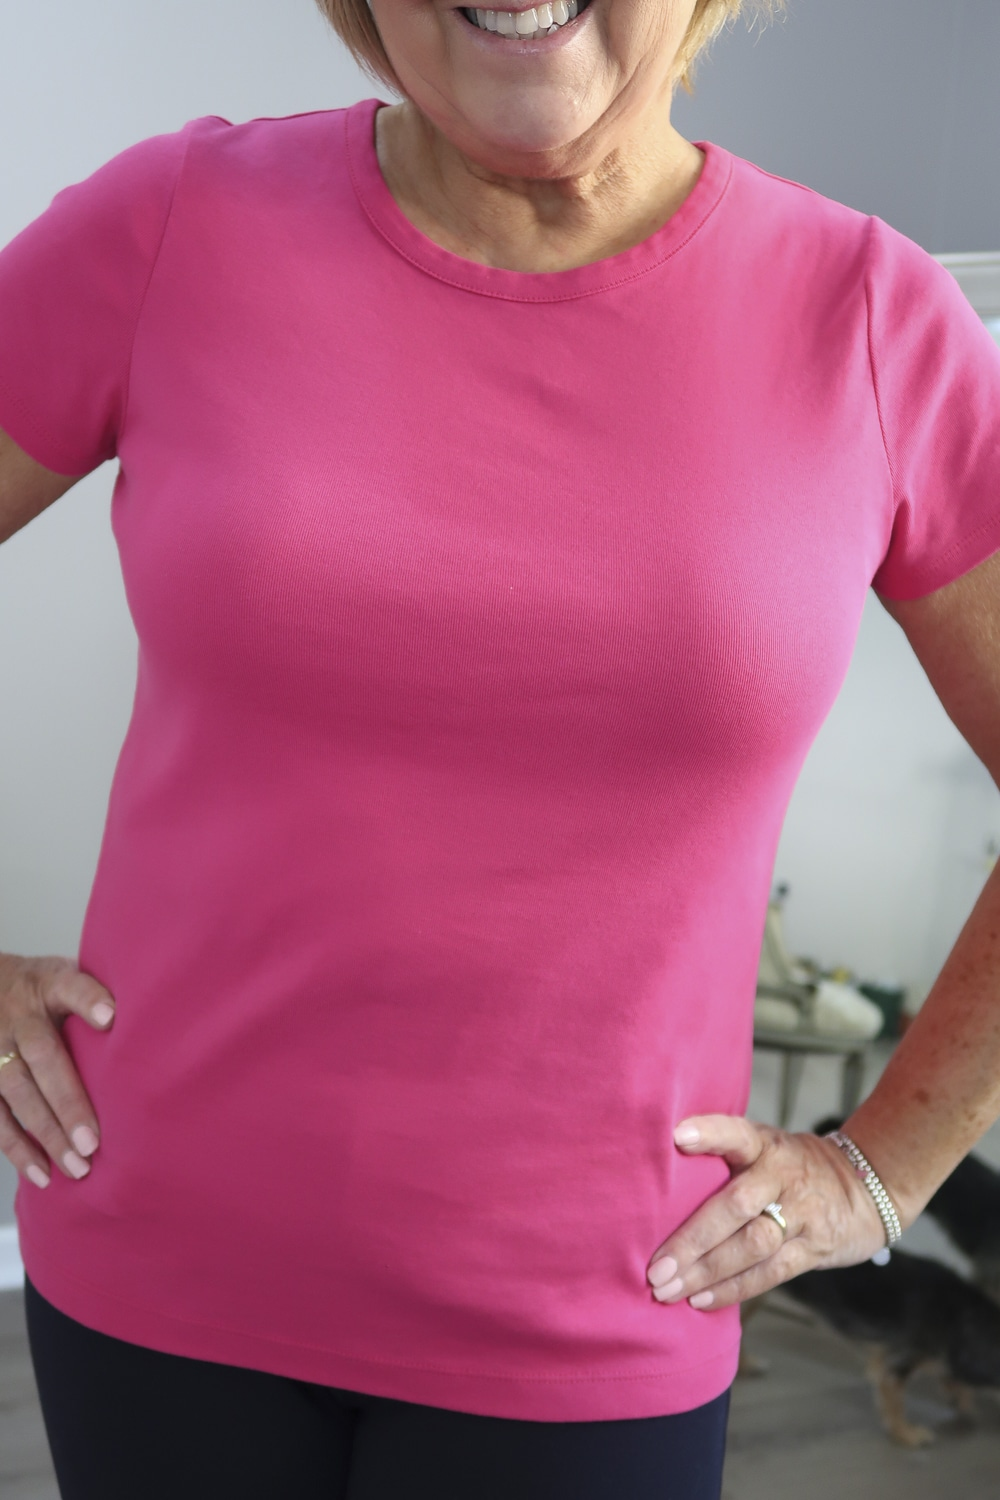 Fashion Blogger 50 Is Not Old styling a pink tee with a crew neck to help you choose the best bra